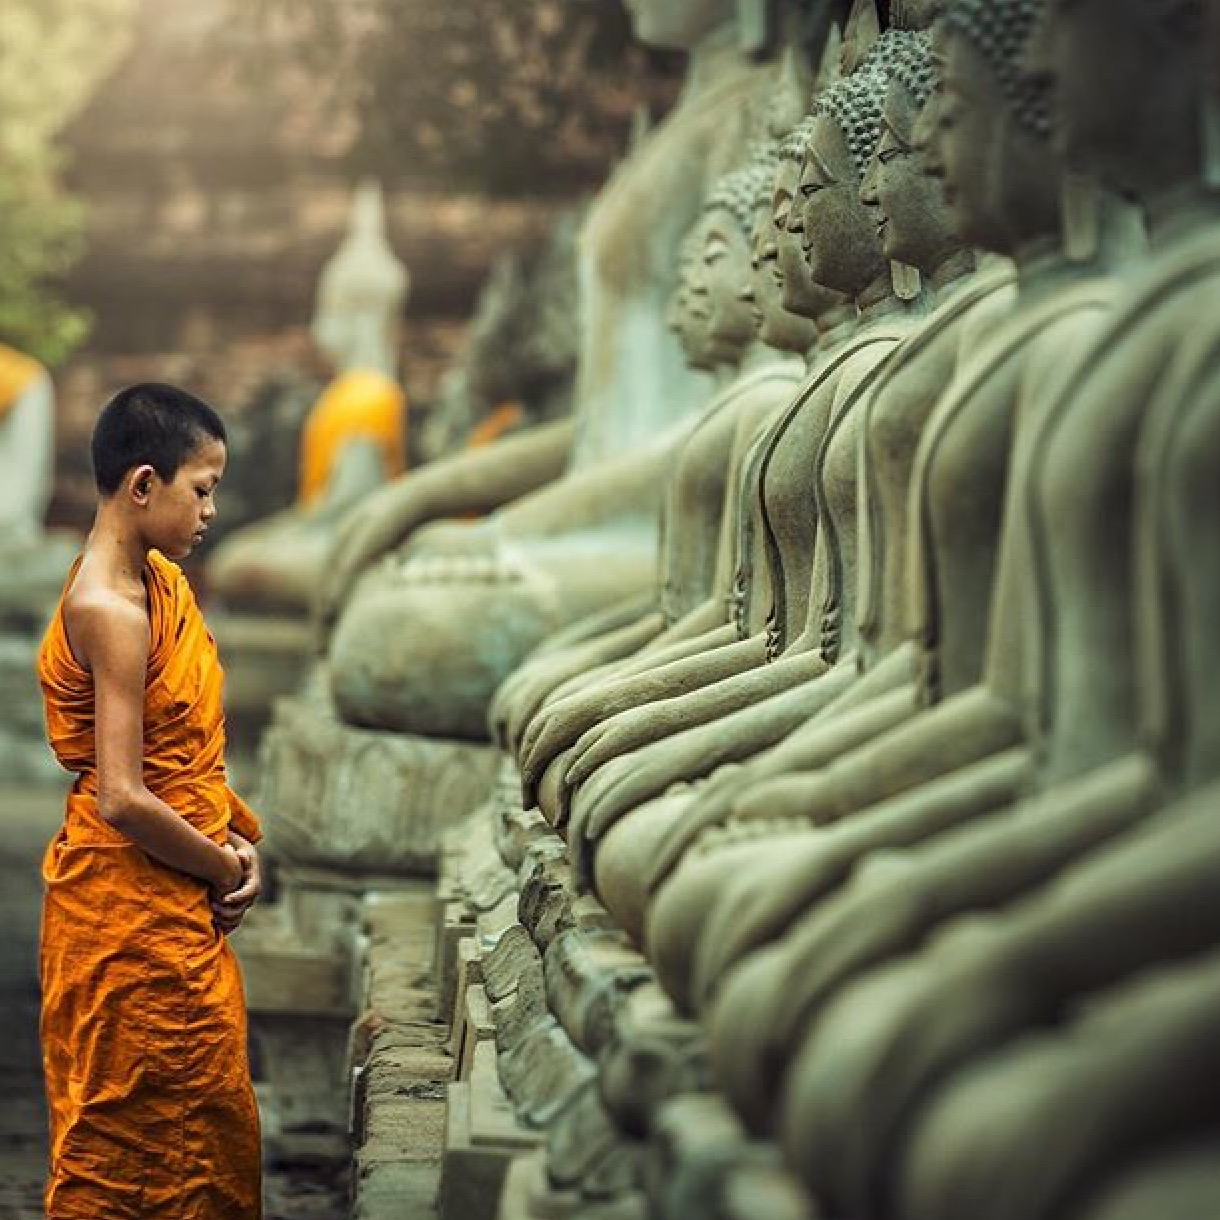 caccdcacbfffffa-buddhist-monk-buddhist-temple-wallpaper-wp3004051